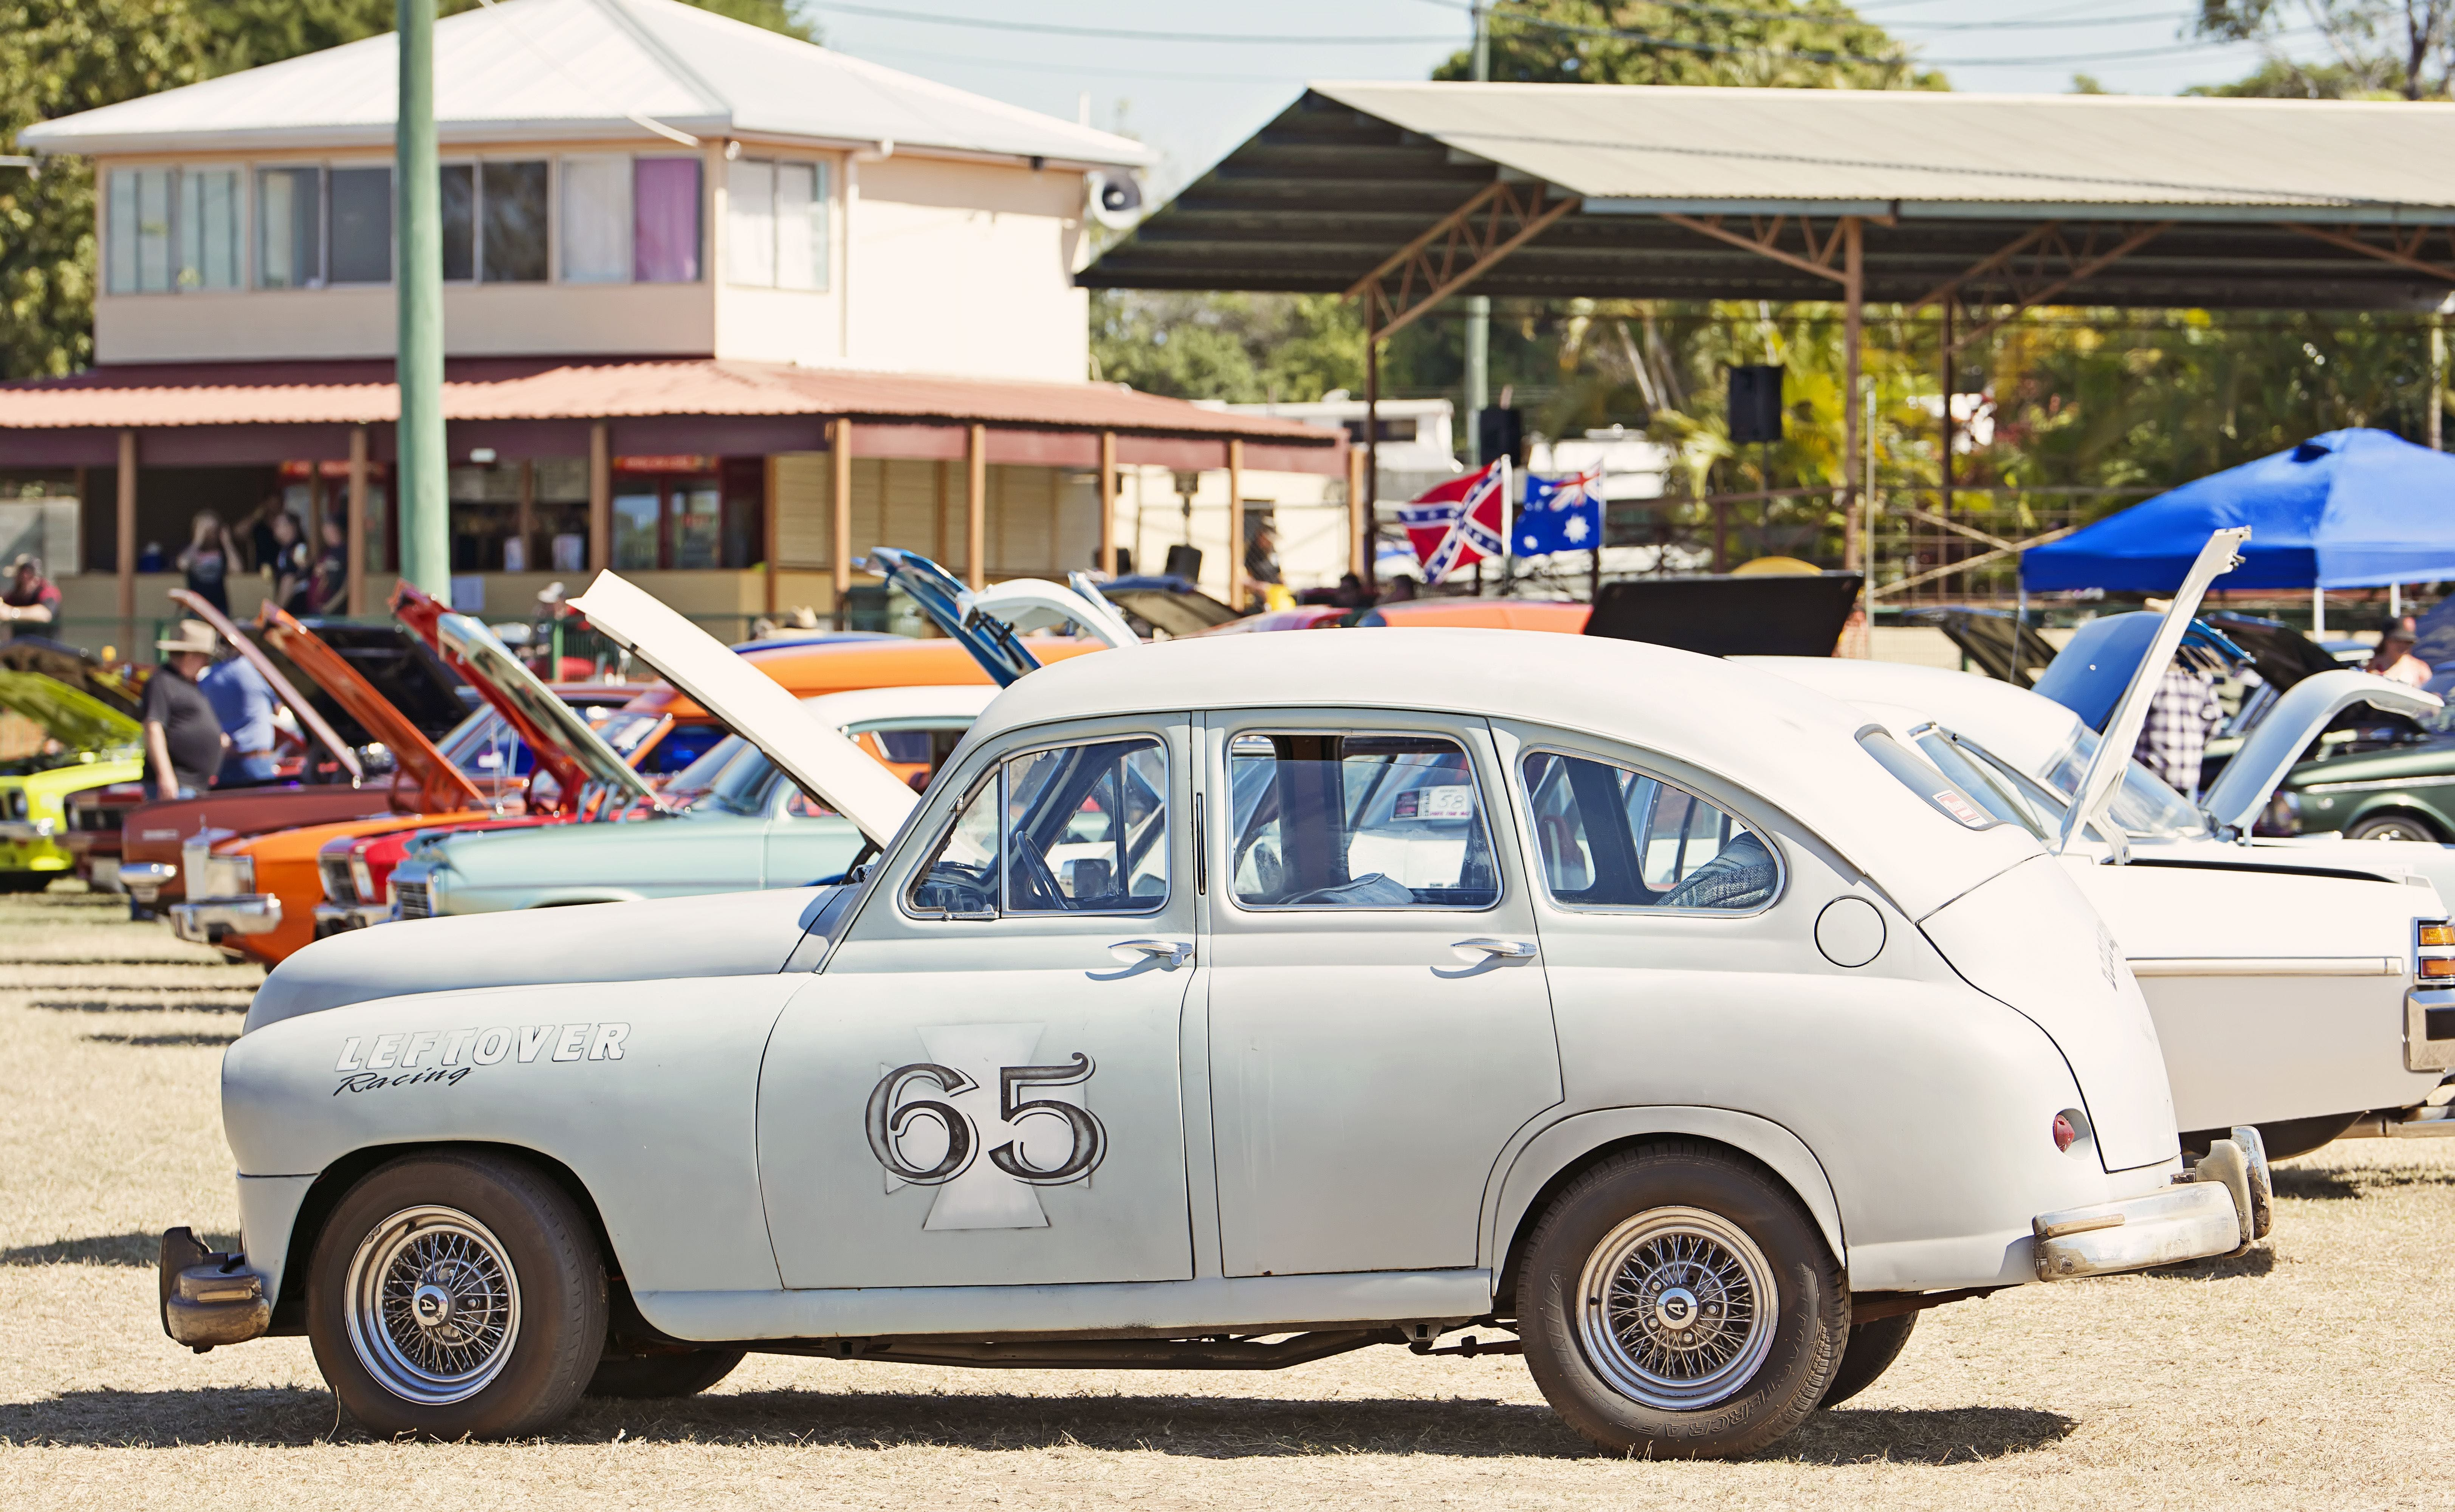 Charters Towers Motor Show and Swap Meet Logo and Images